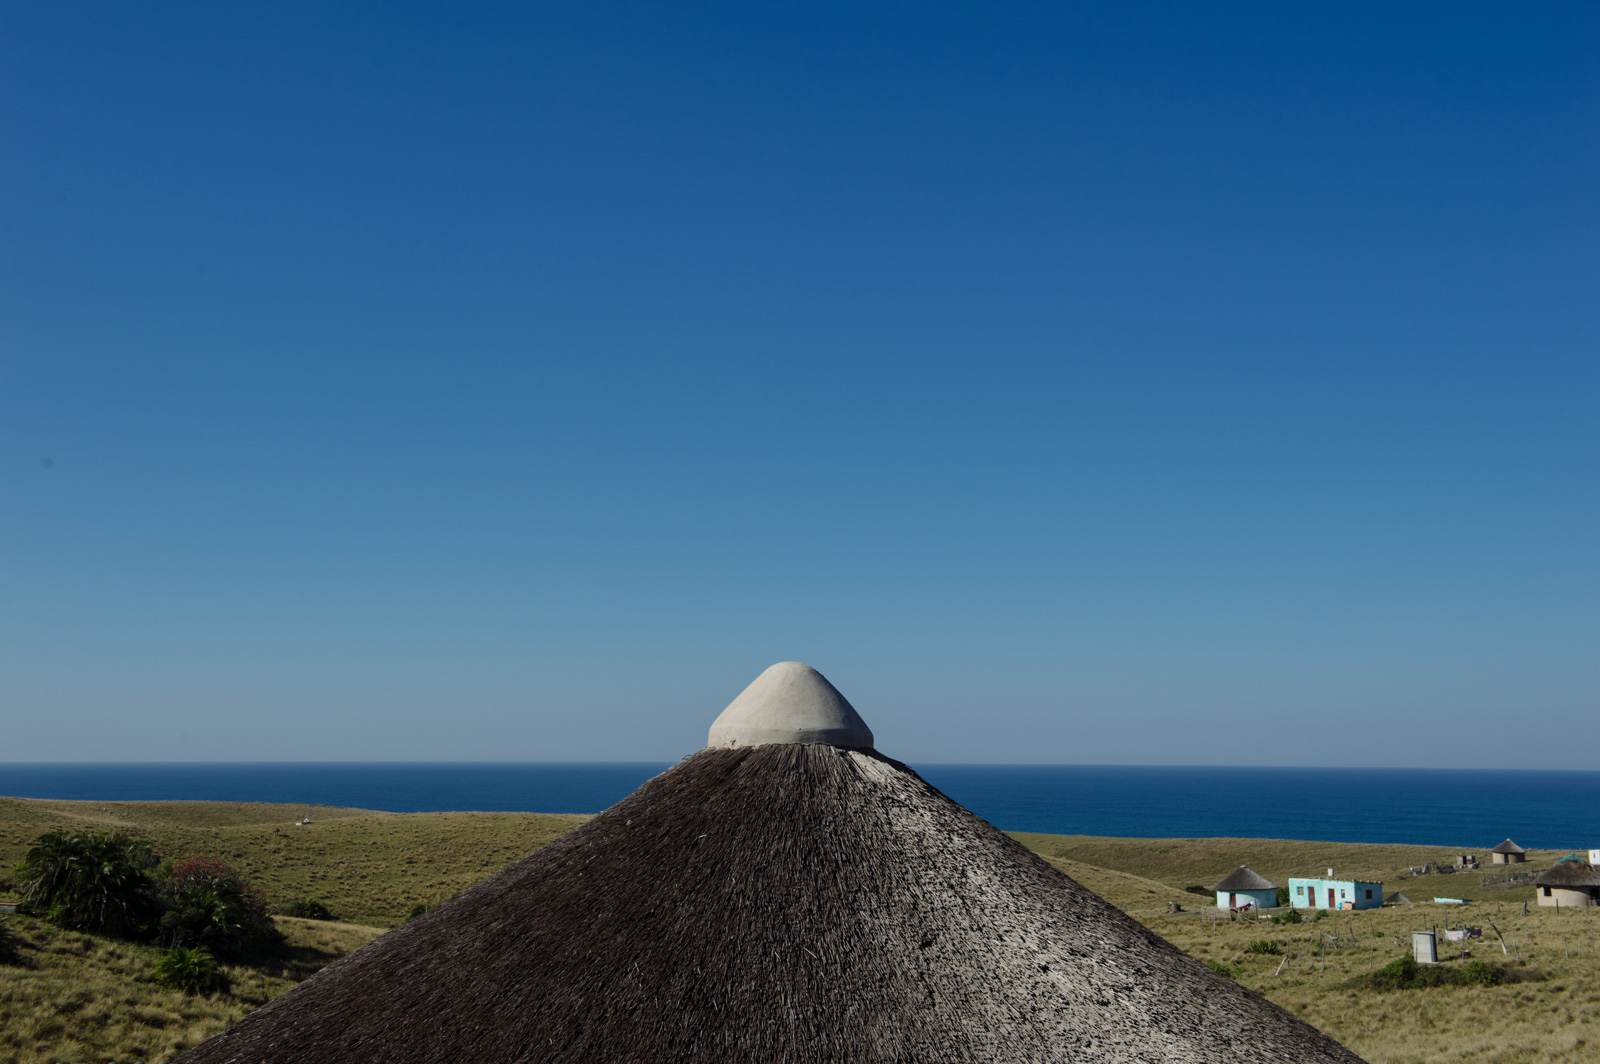 hut in transkei